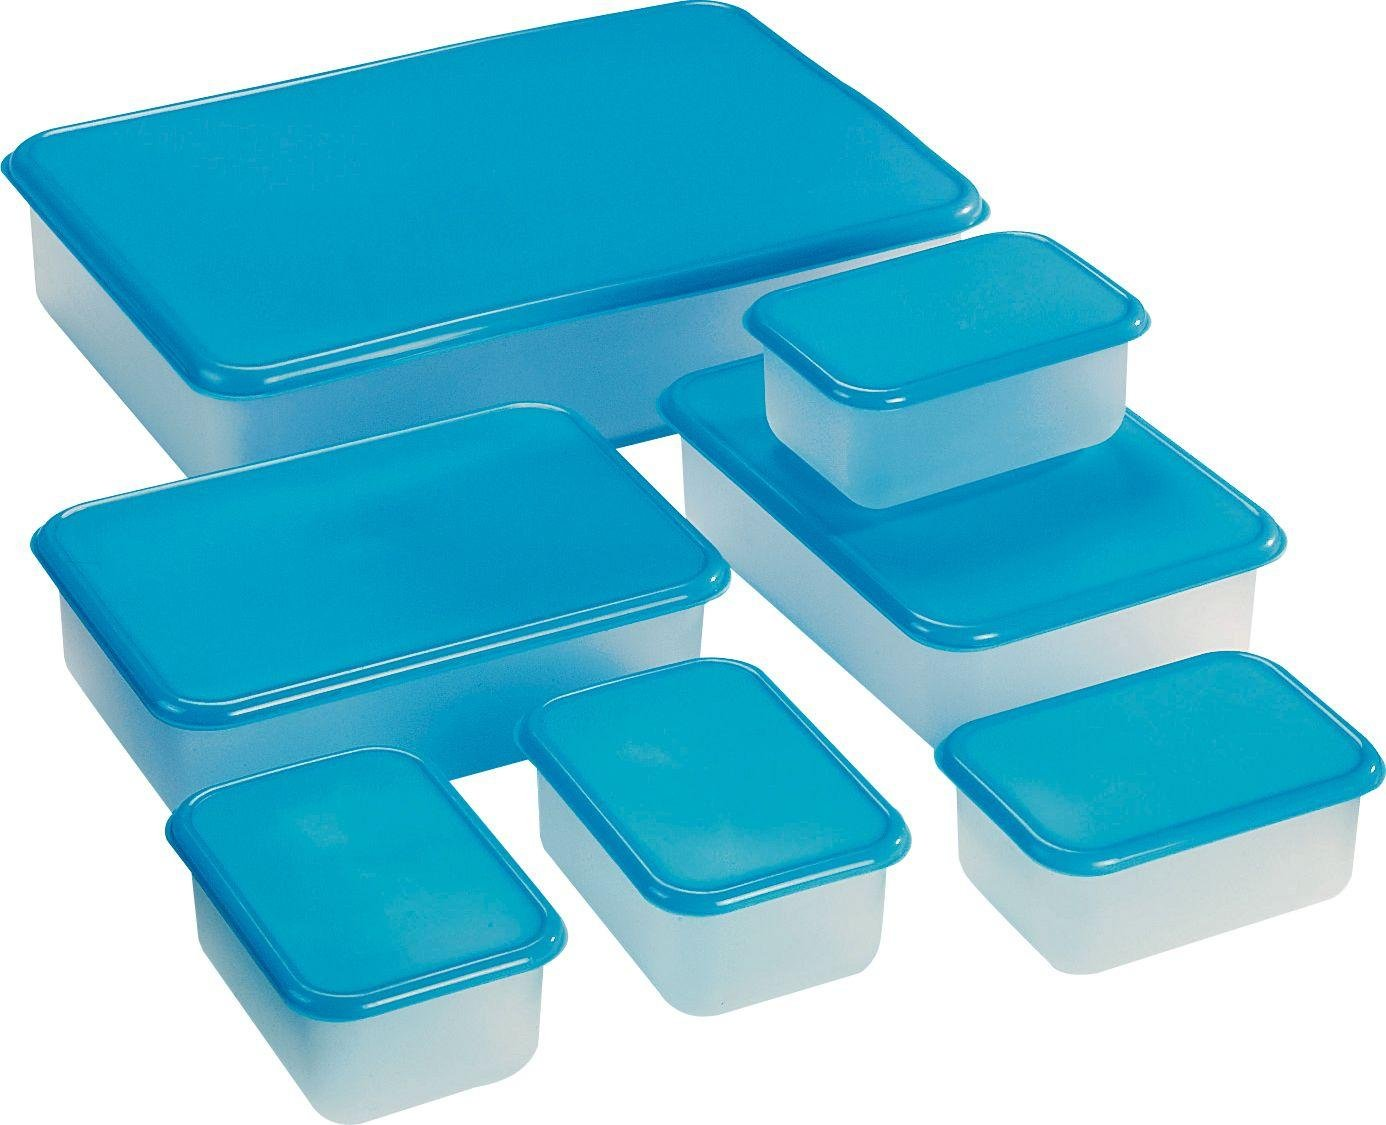 HOME - Plastic Food Storage Set - 7 Piece